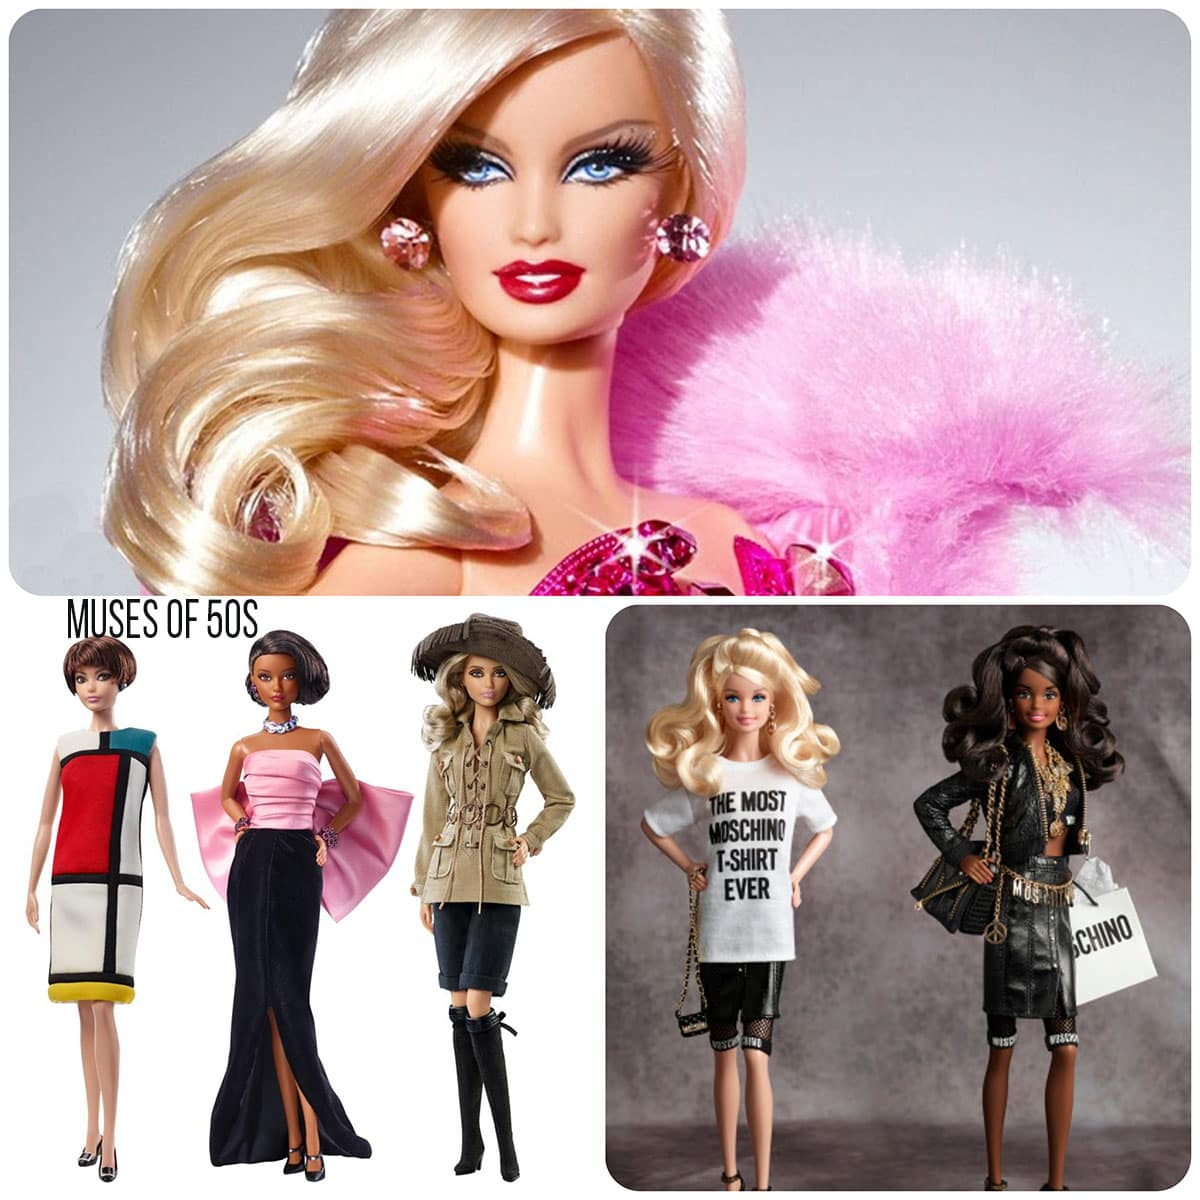 Barbie 55 Muses and Moschino by Runway Magazine